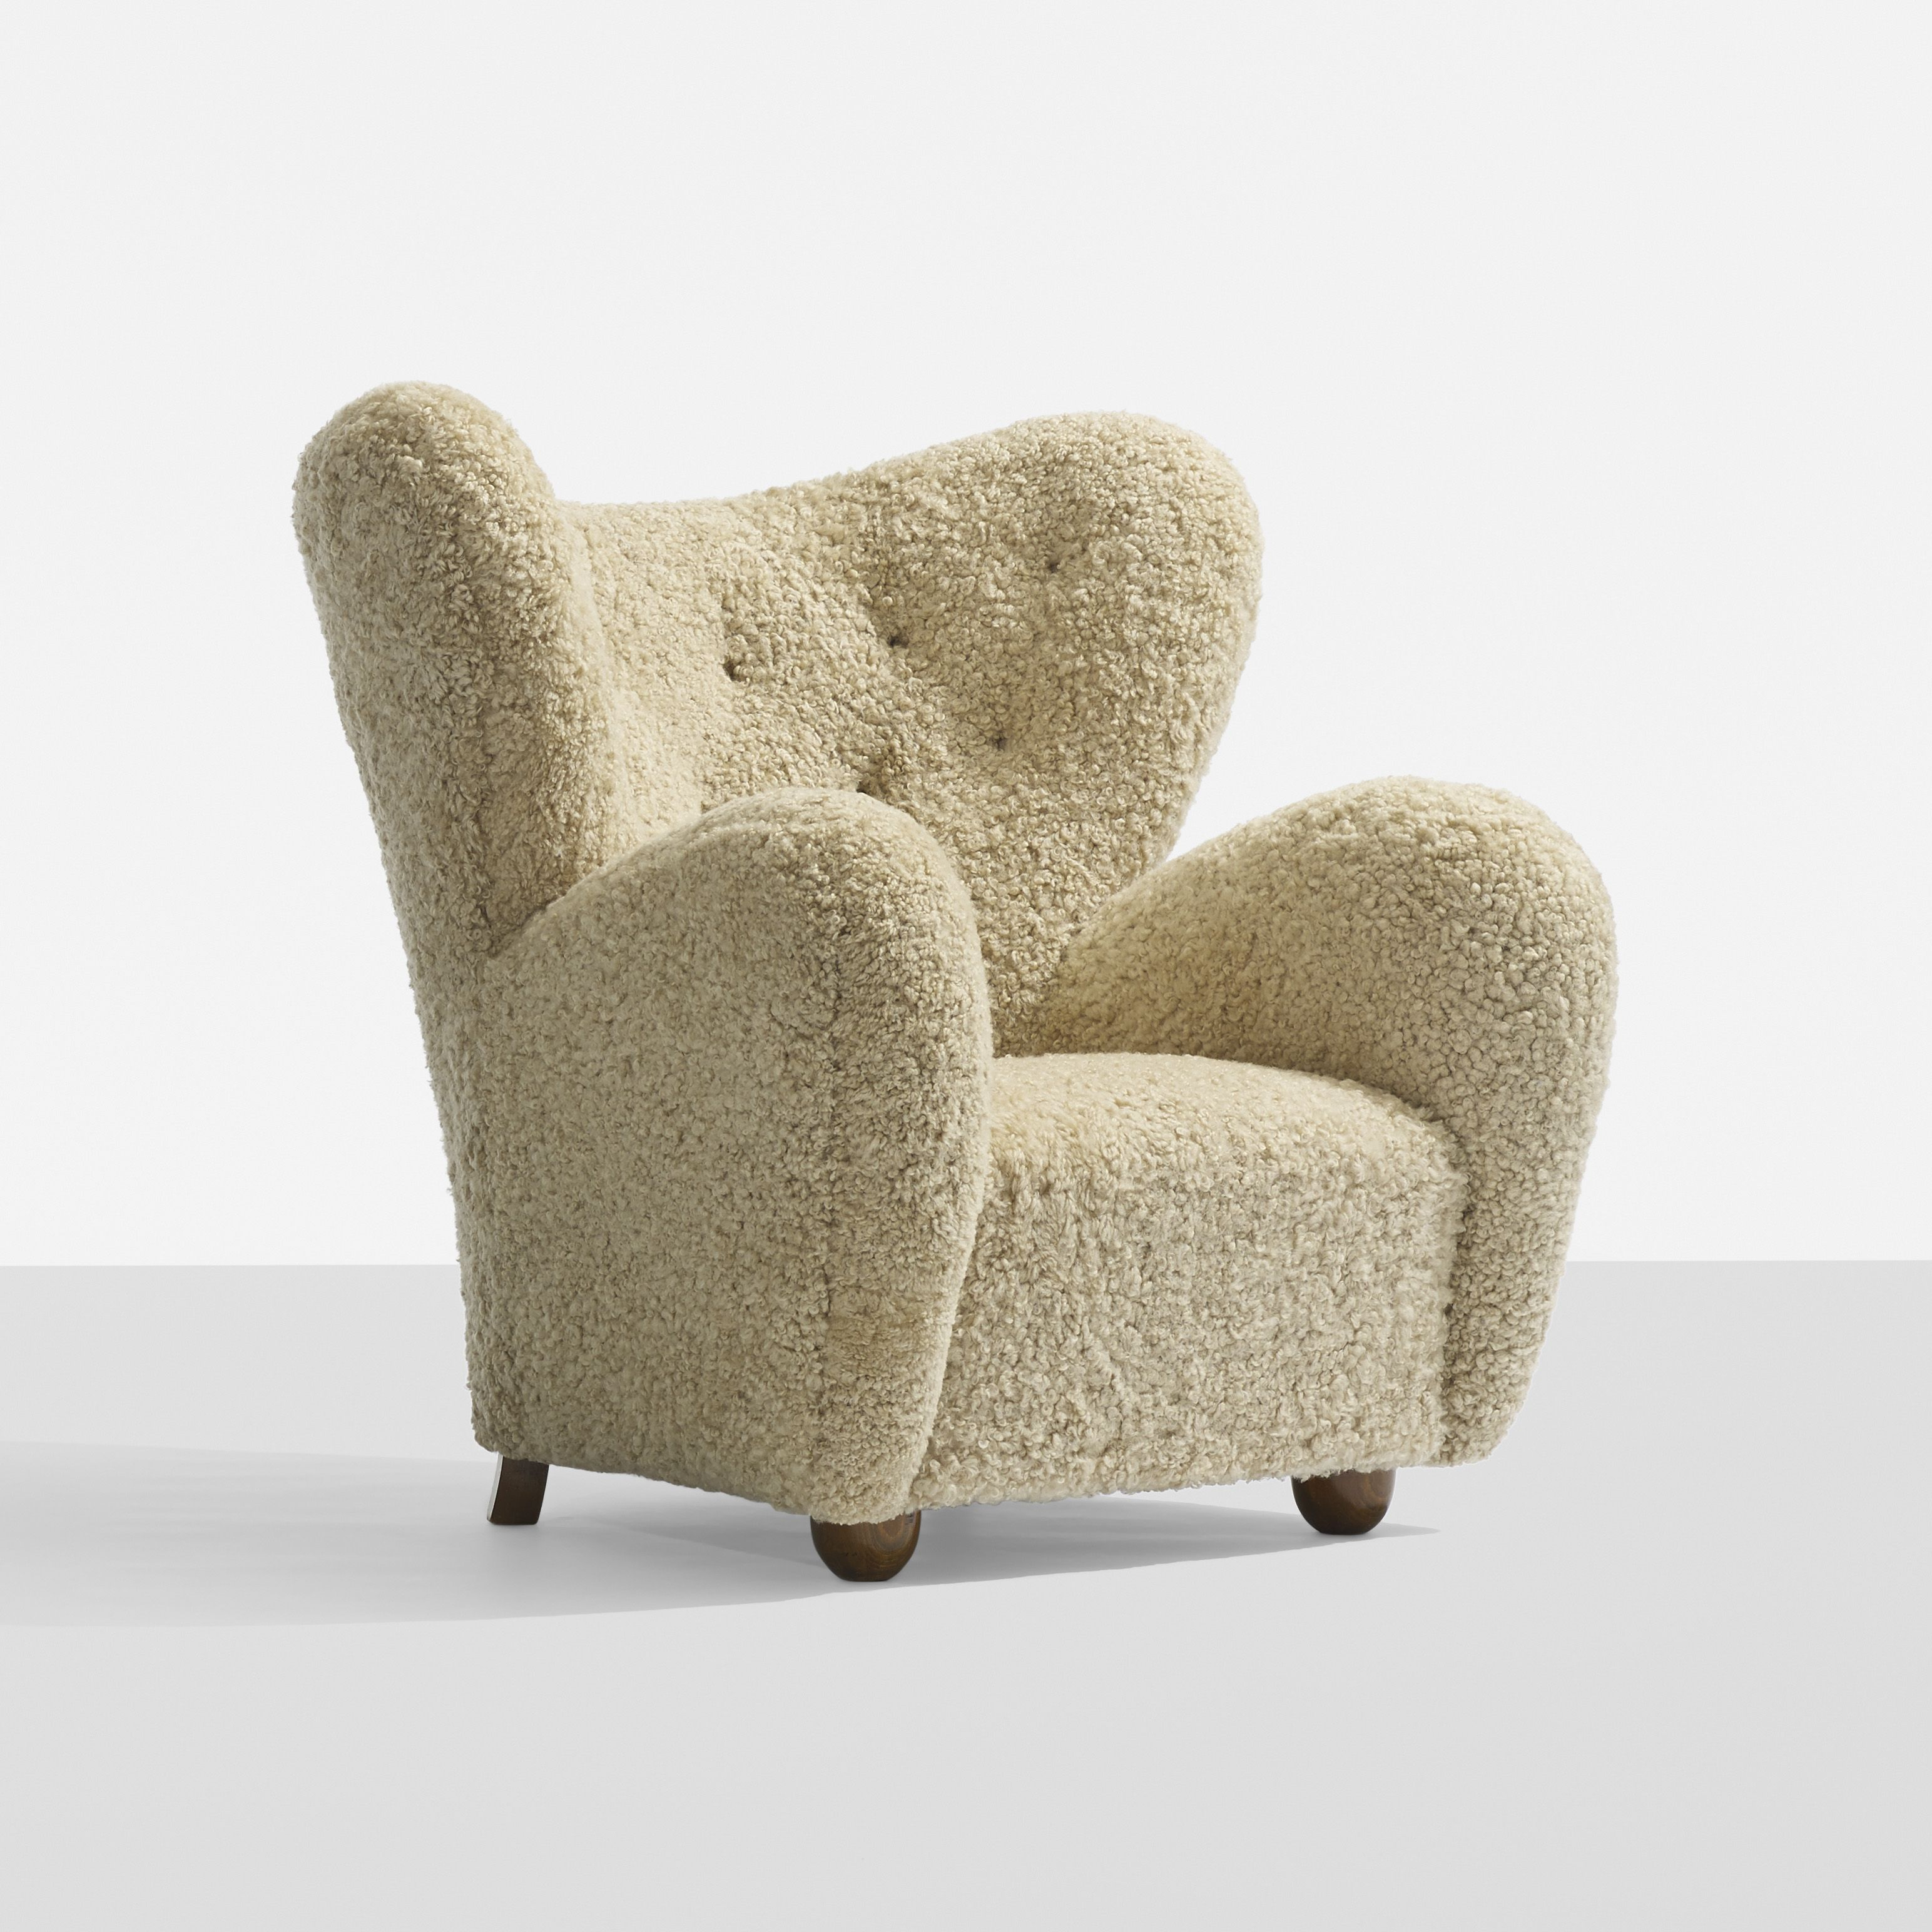 Flemming Lassen, attribution lounge chair, c. 1940  Oh my gosh, this looks like it's fleece.  Comfy and warm, ahhh...